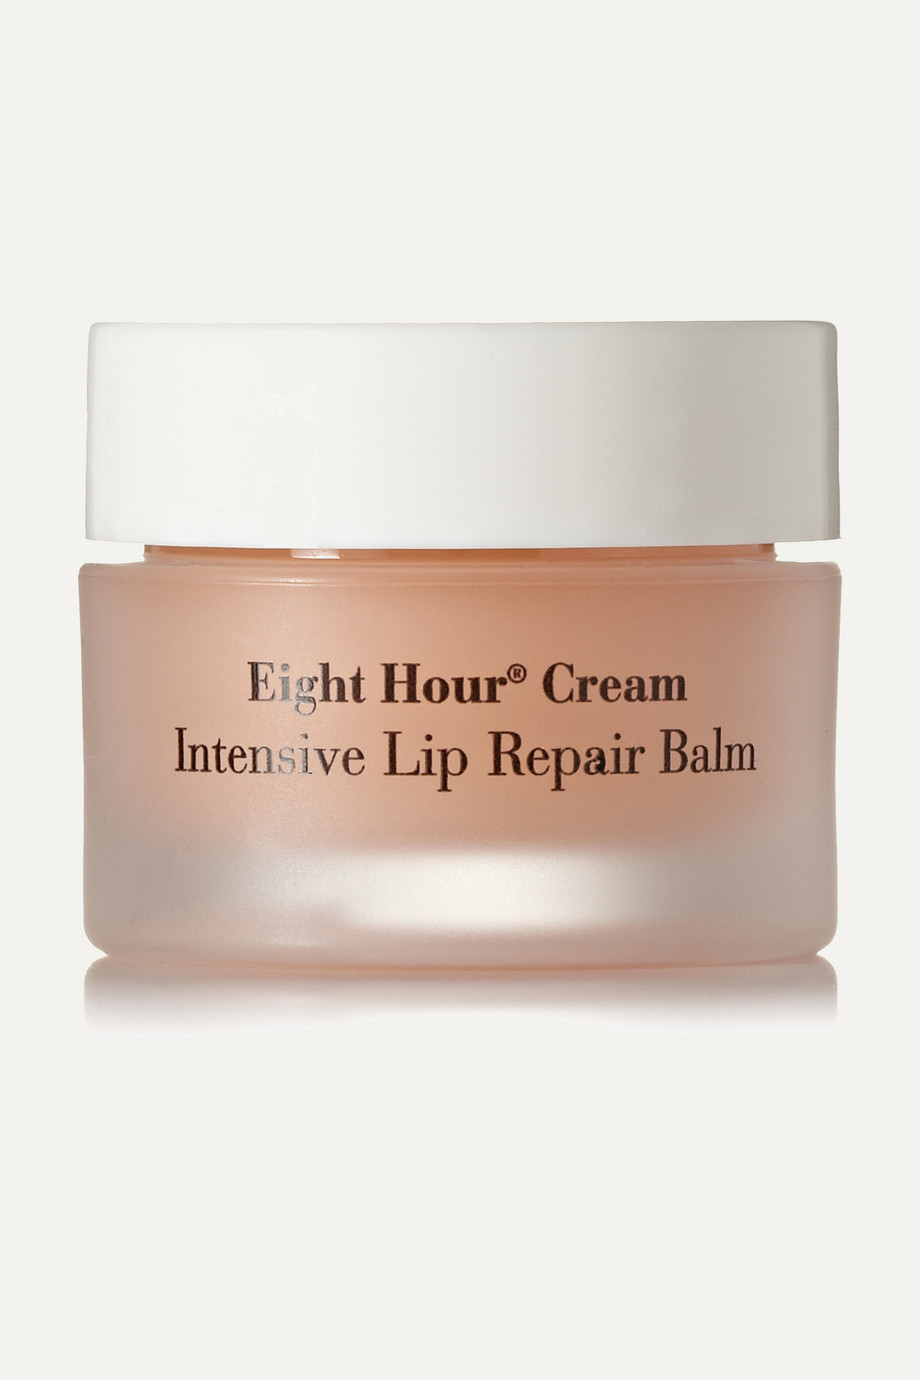 Elizabeth Arden Eight Hour® Cream Intensive Lip Repair Balm, 11.6ml – Lippenpflege